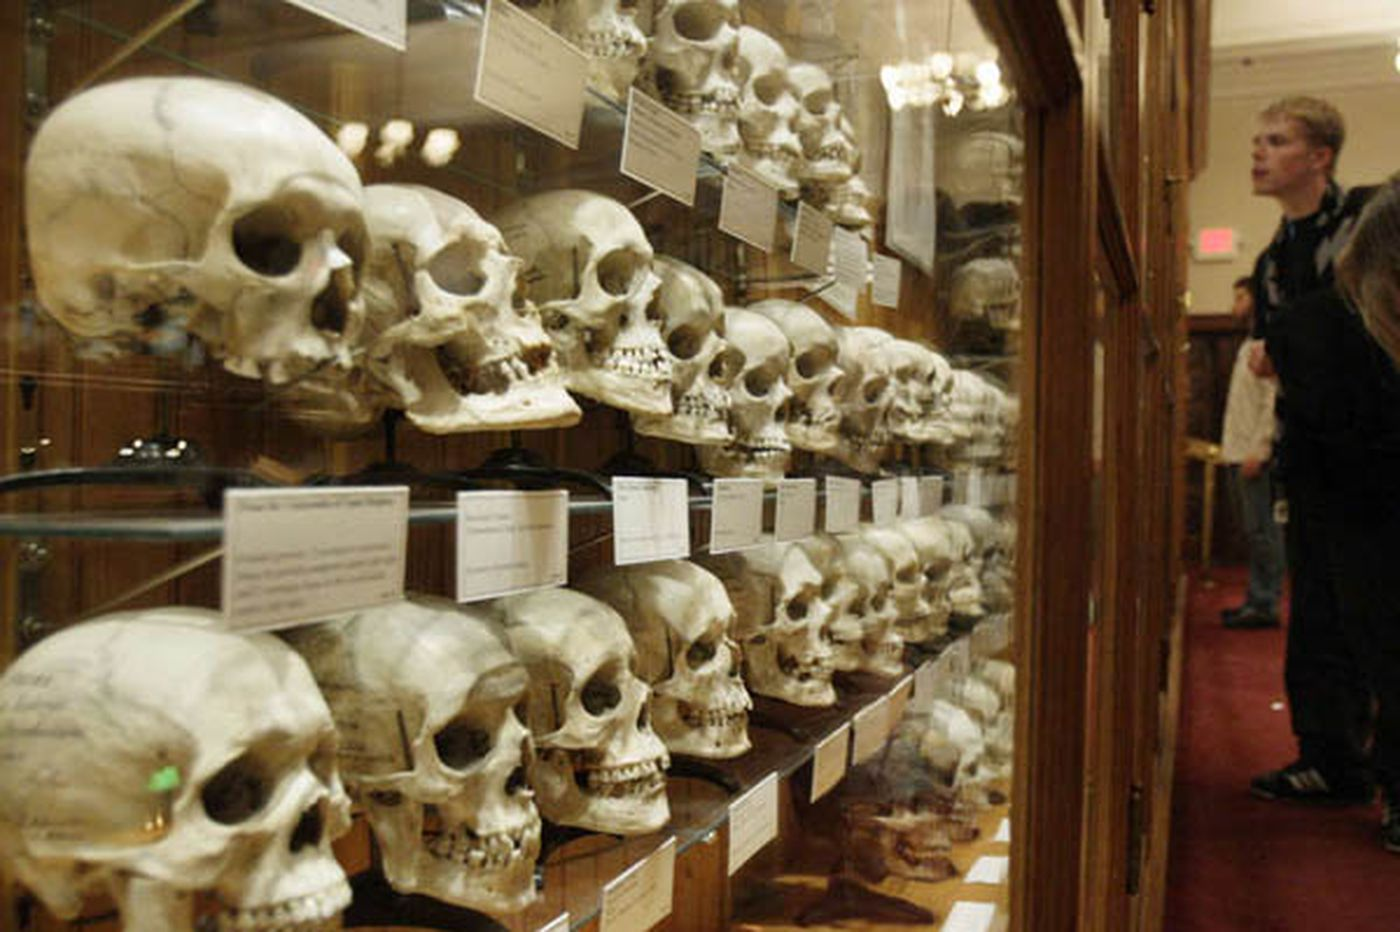 Mutter Museum: More than just a freak show